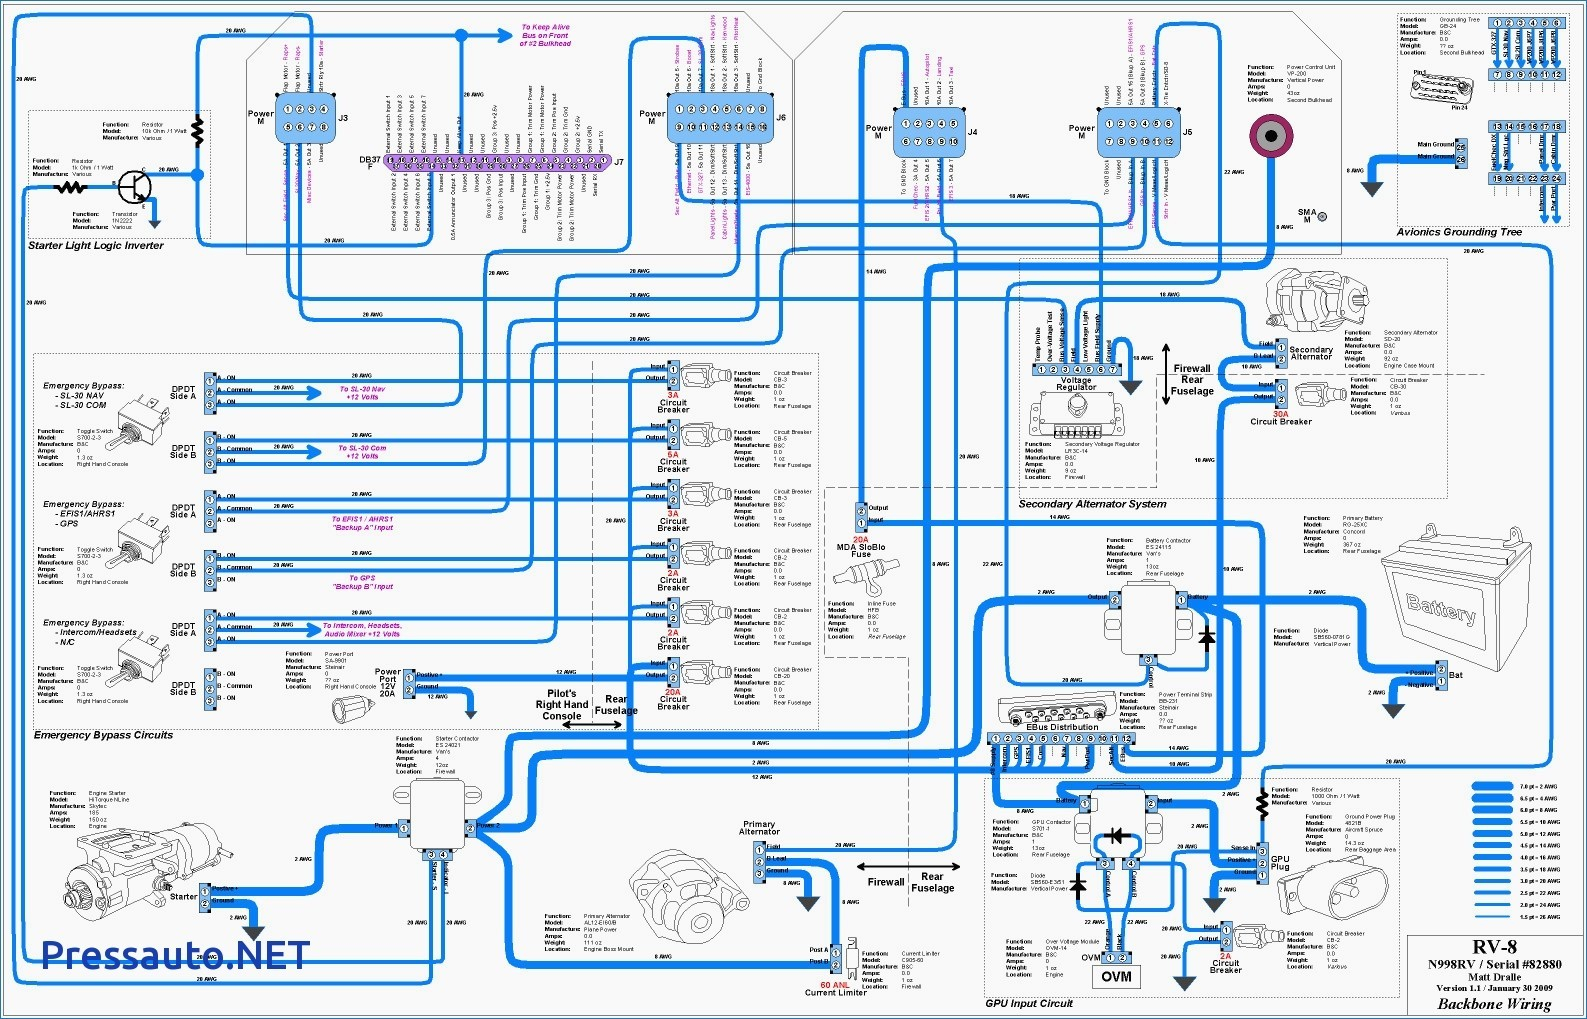 1996 Monaco Wiring Diagram Schematic - Fusebox and Wiring Diagram wires-sleep  - wires-sleep.paoloemartina.itdiagram database - paoloemartina.it